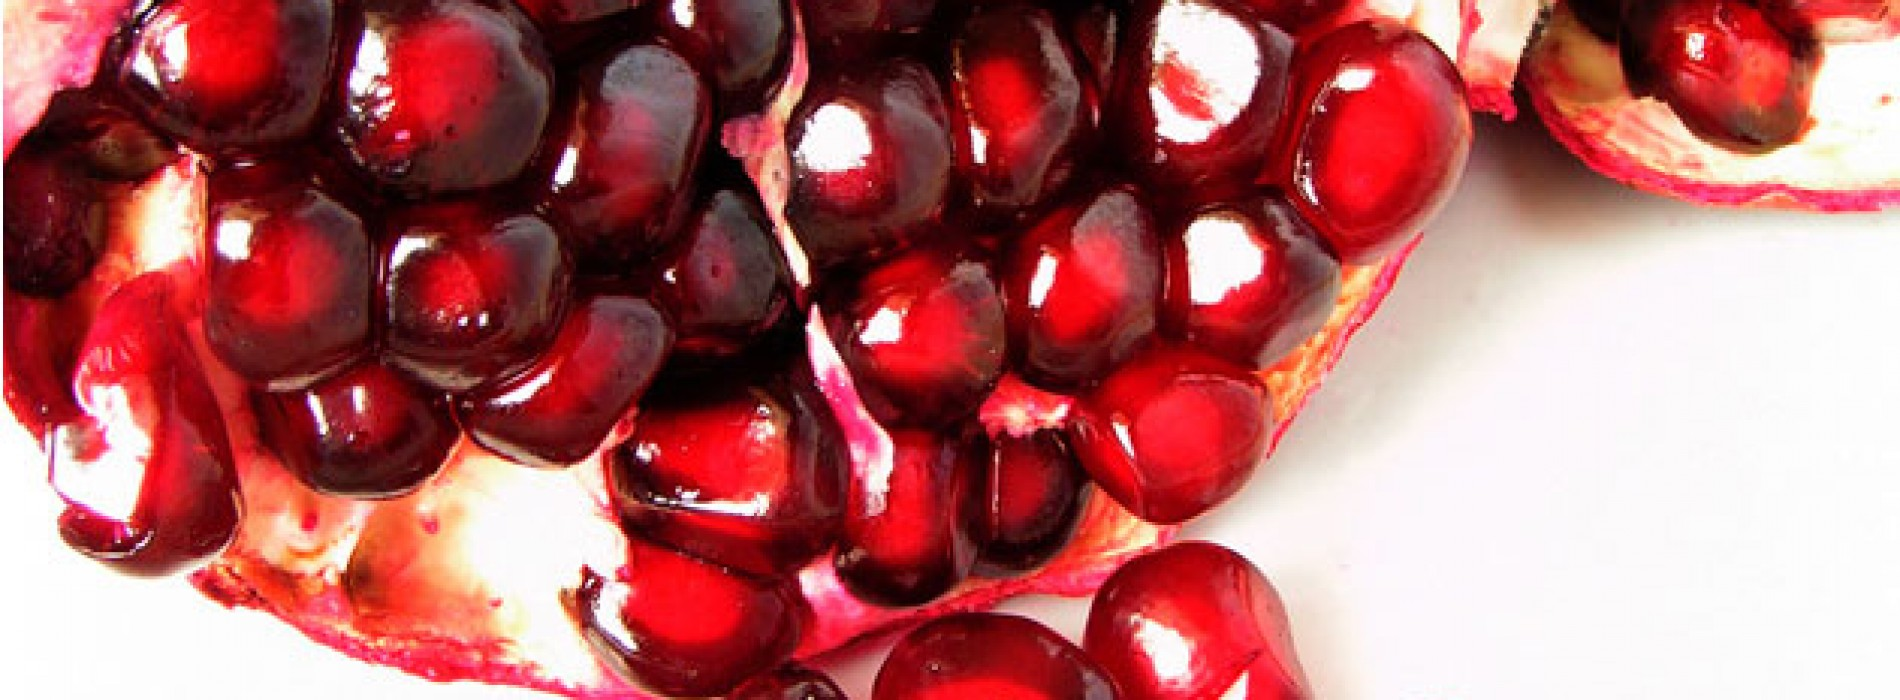 What's so great about pomegranates?